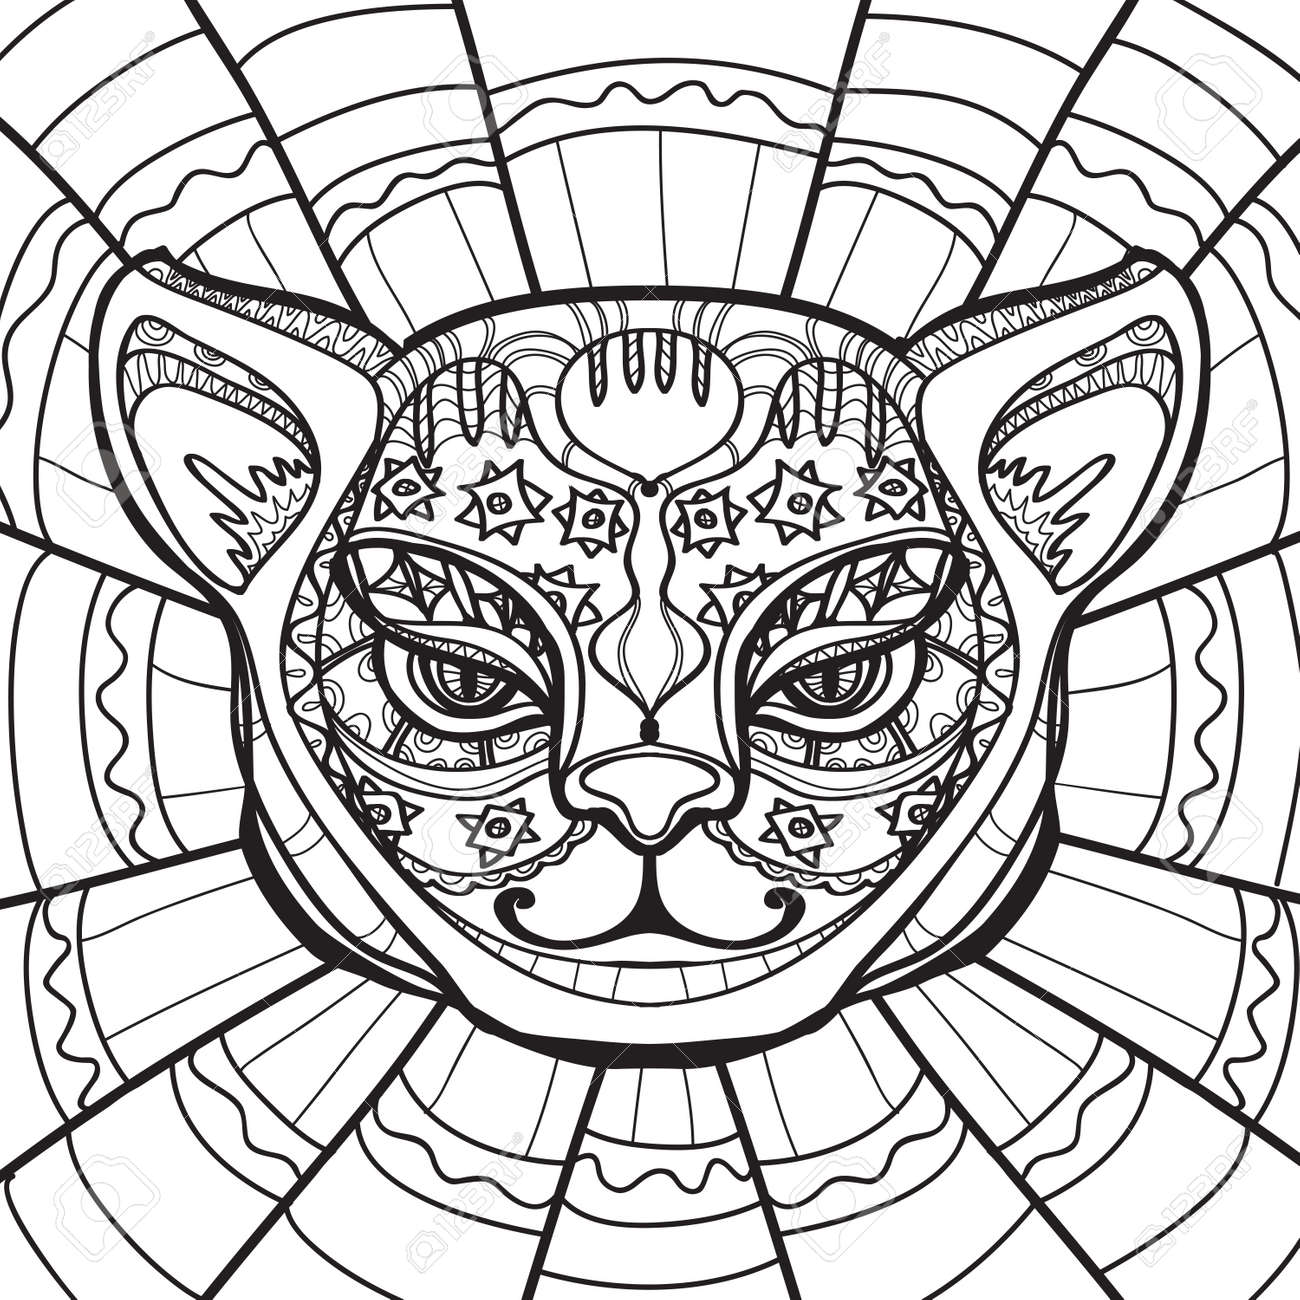 Coloring Page With Cat Head Royalty Free Cliparts Vectors And